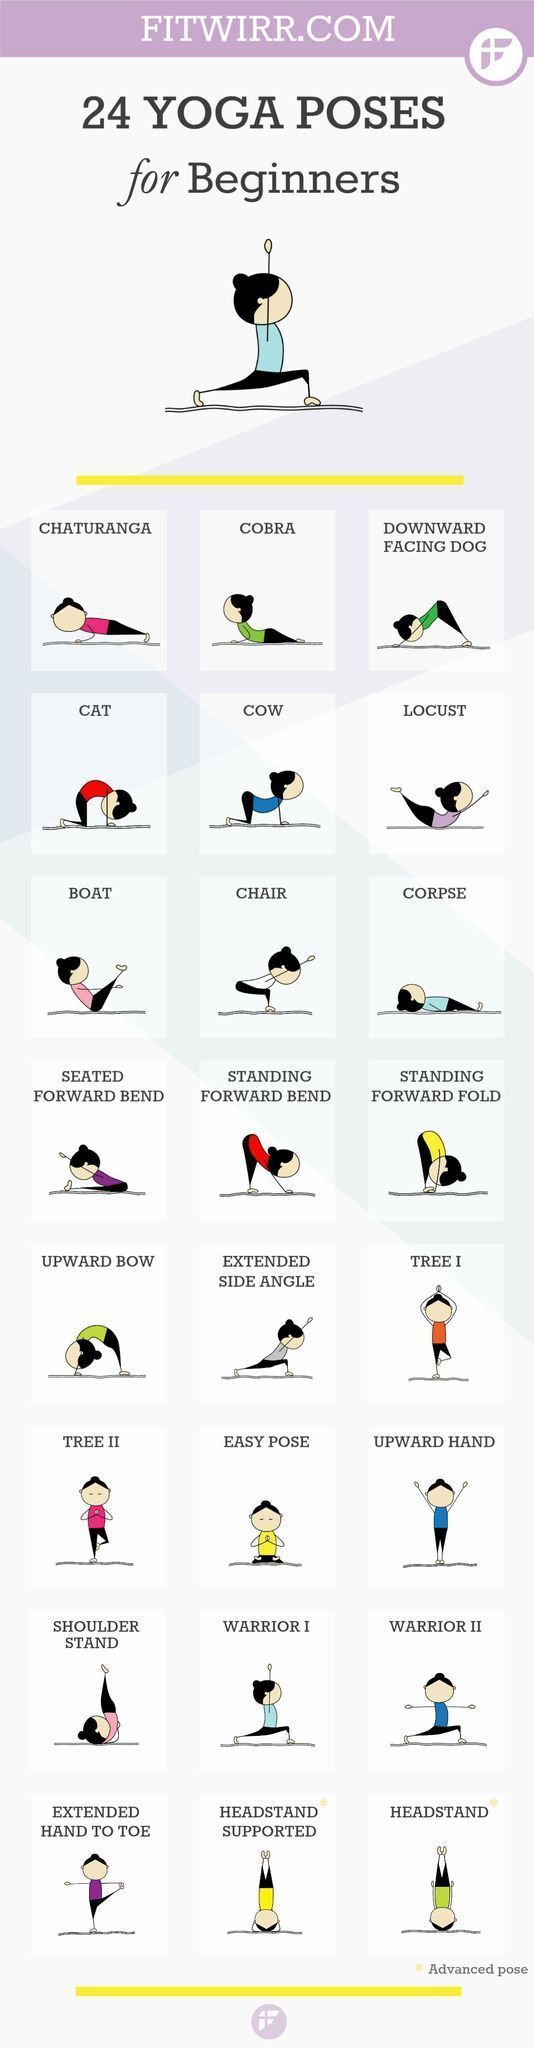 24 Beginners Yoga Poses Chart Your Cheat Sheet To Mastering The Common At Home